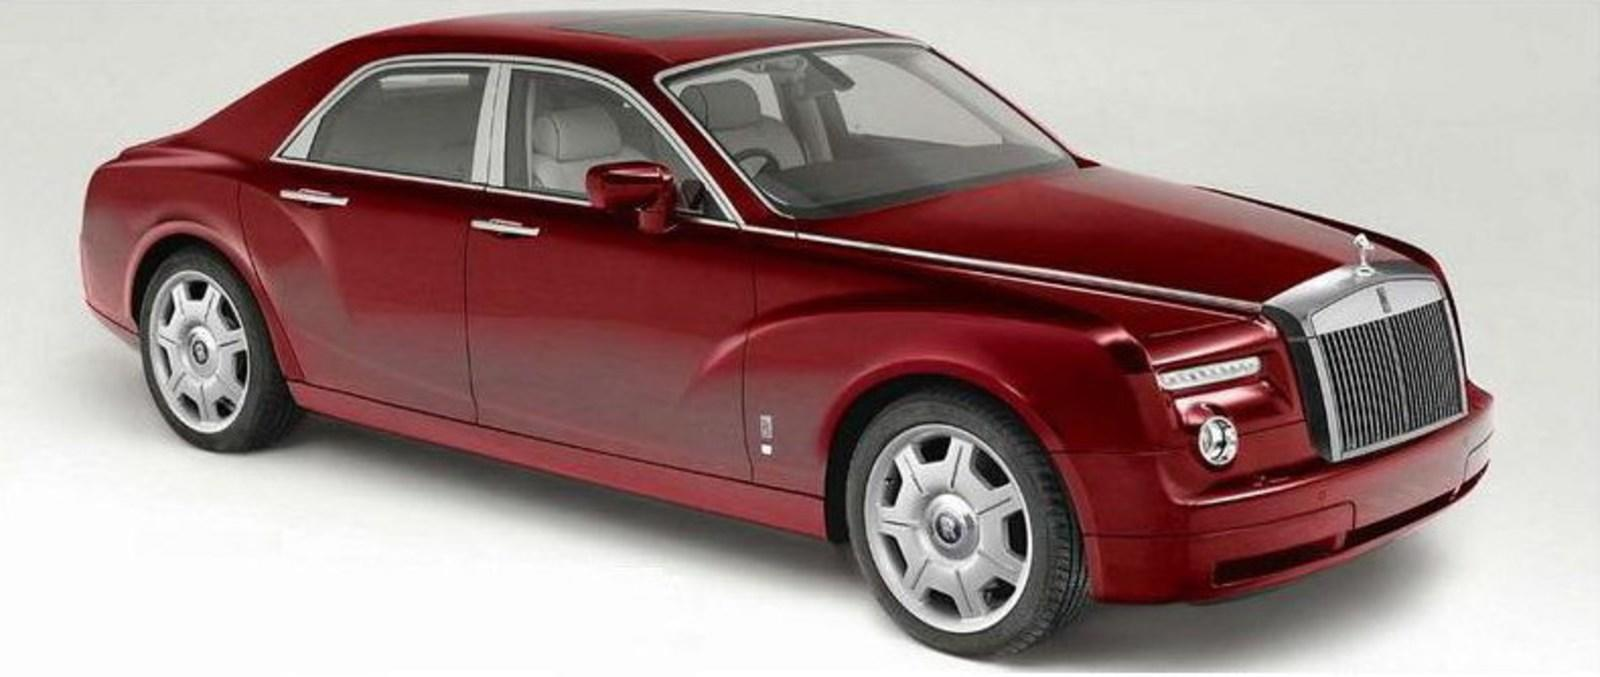 future baby rolls royce on sale starting 2010 news. Black Bedroom Furniture Sets. Home Design Ideas